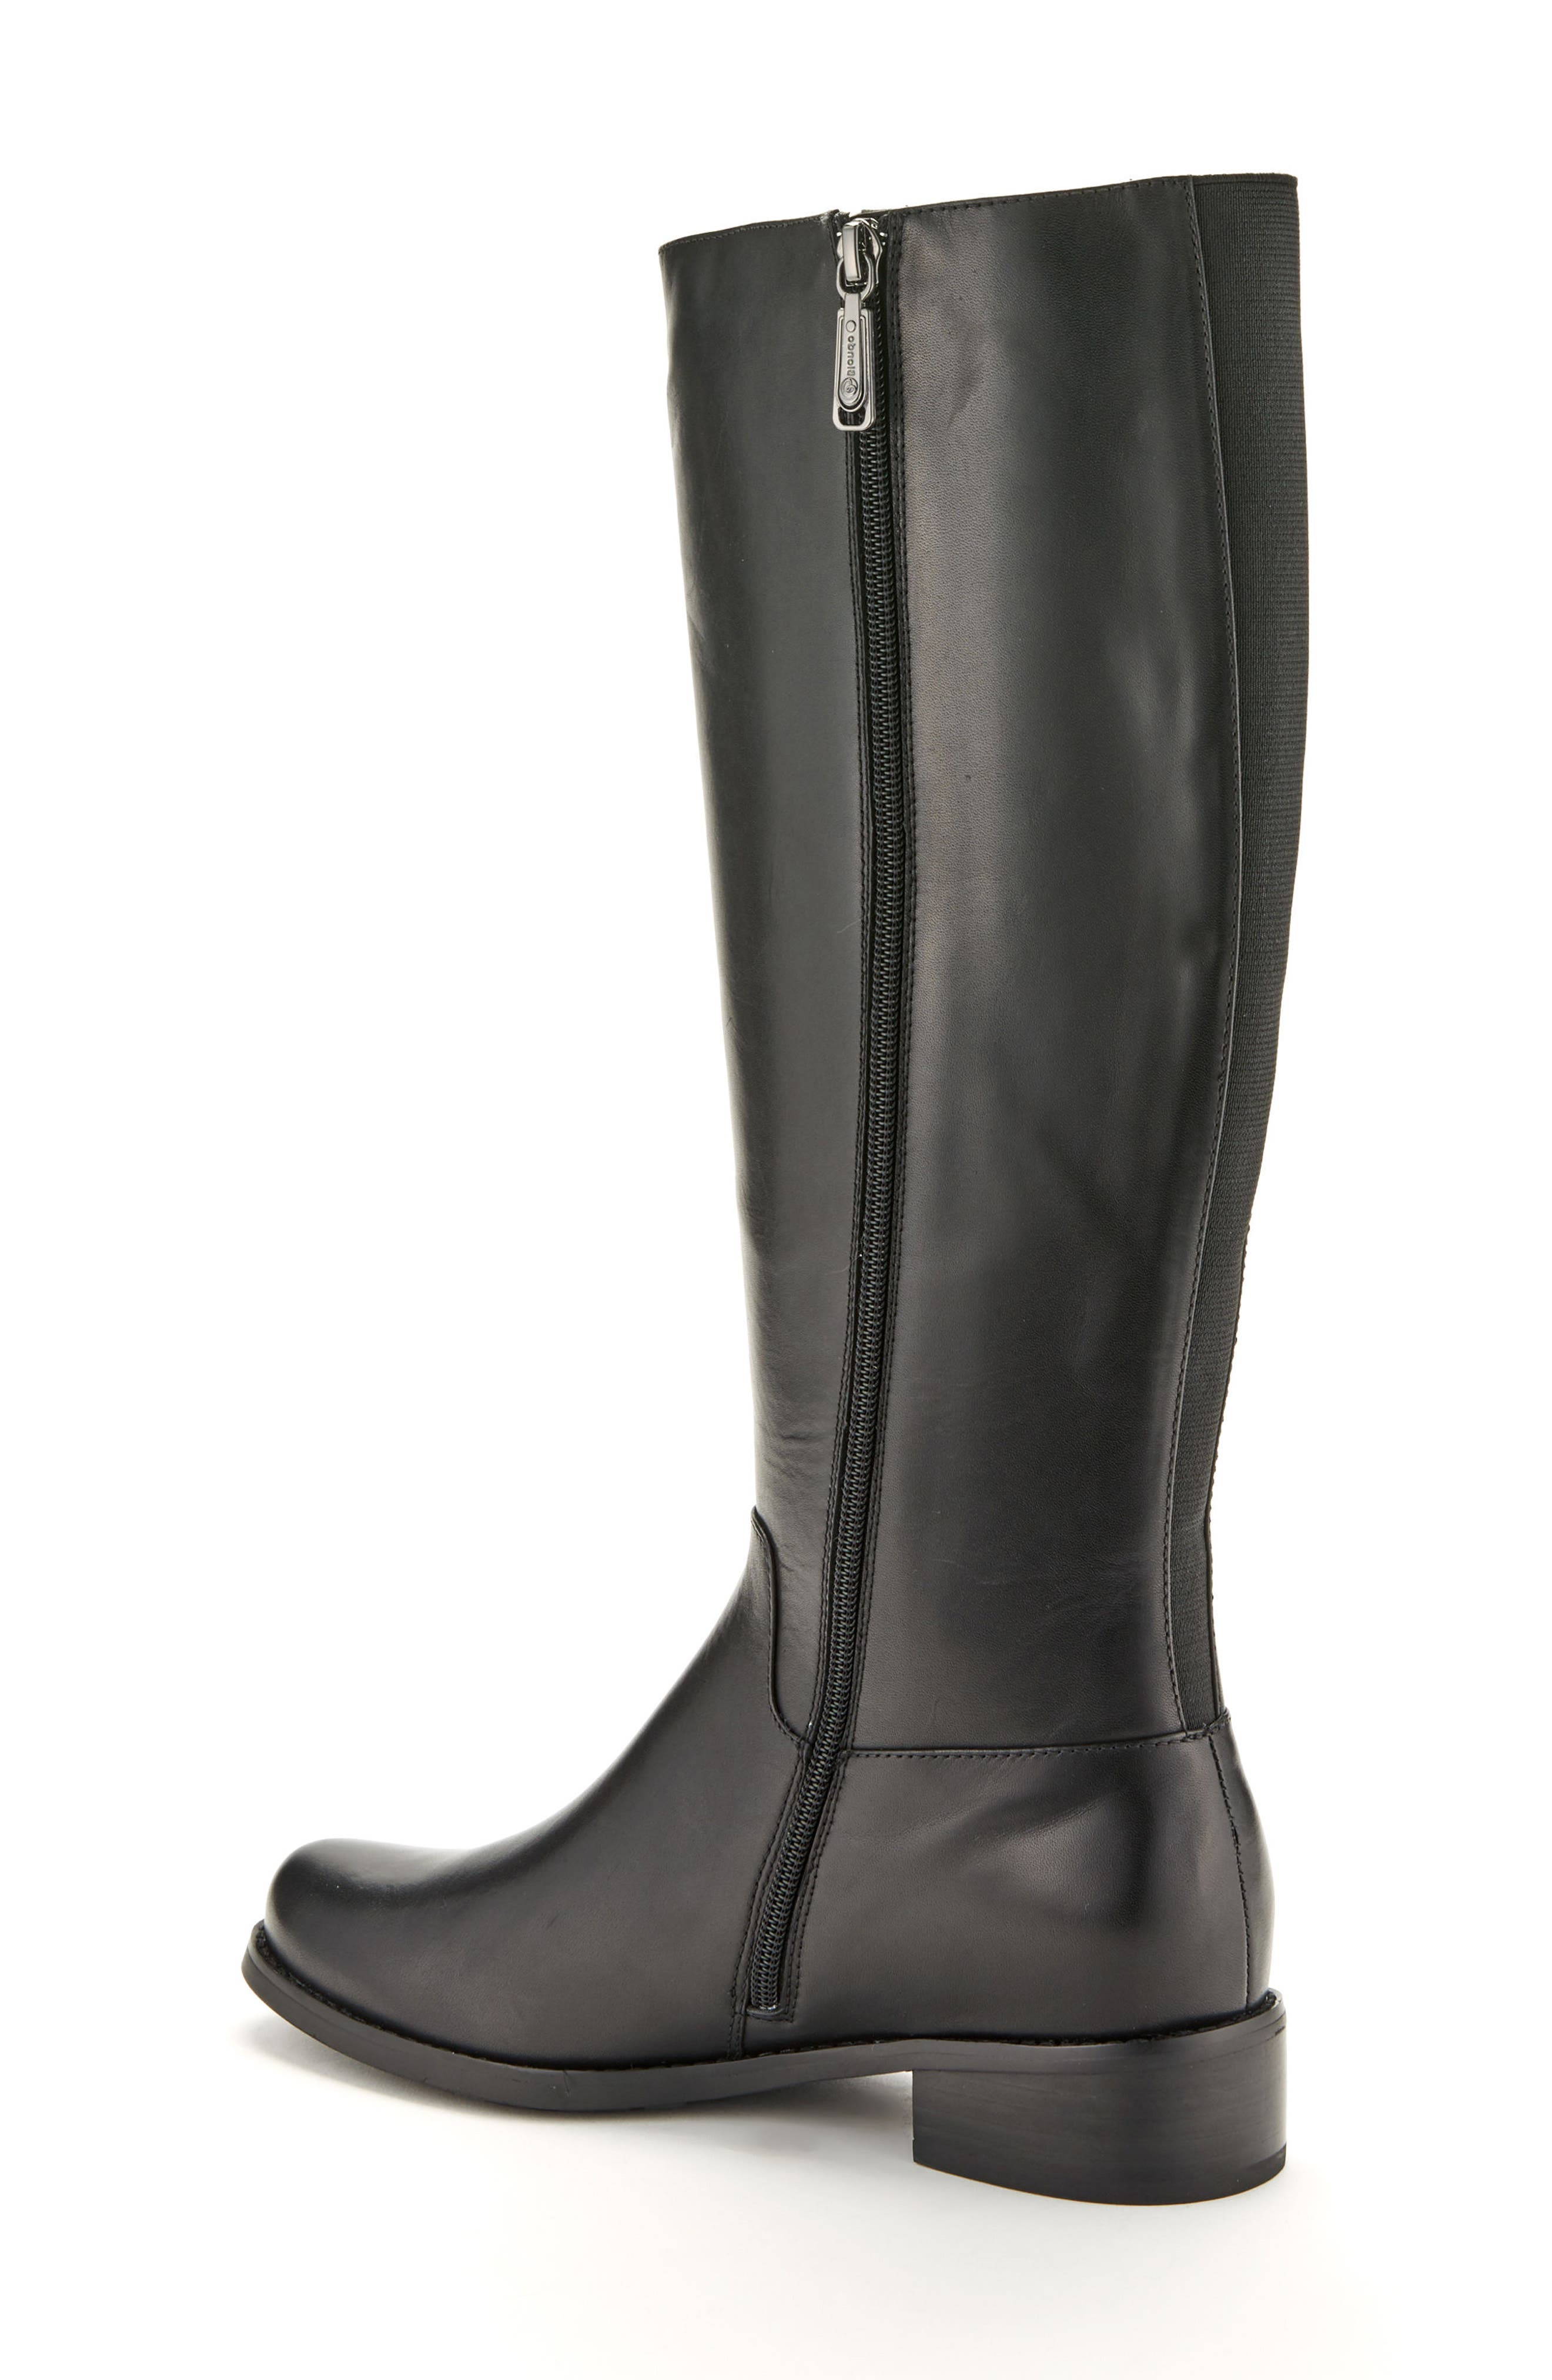 Volly Waterproof Riding Boot,                             Alternate thumbnail 2, color,                             001